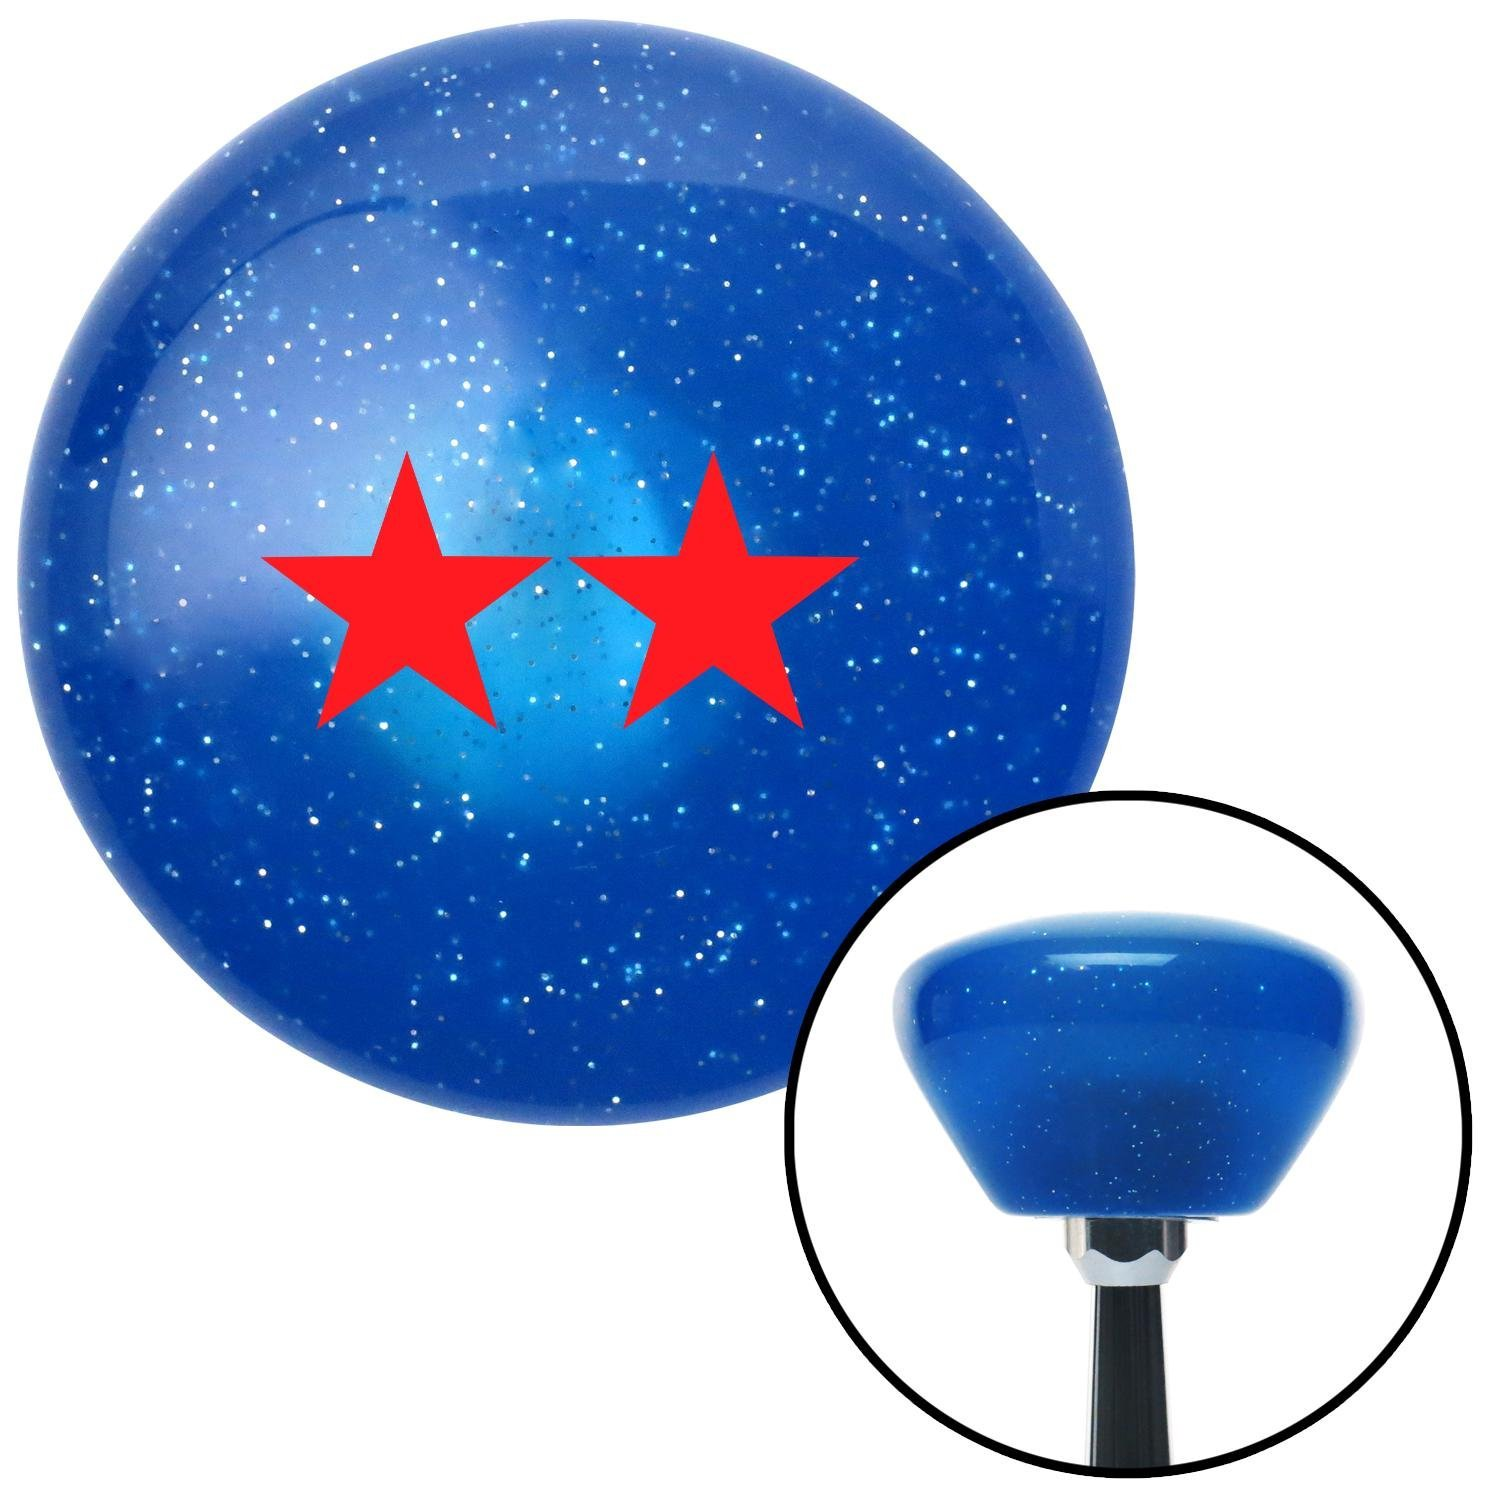 Red Officer 08 - Major General American Shifter 186746 Blue Retro Metal Flake Shift Knob with M16 x 1.5 Insert